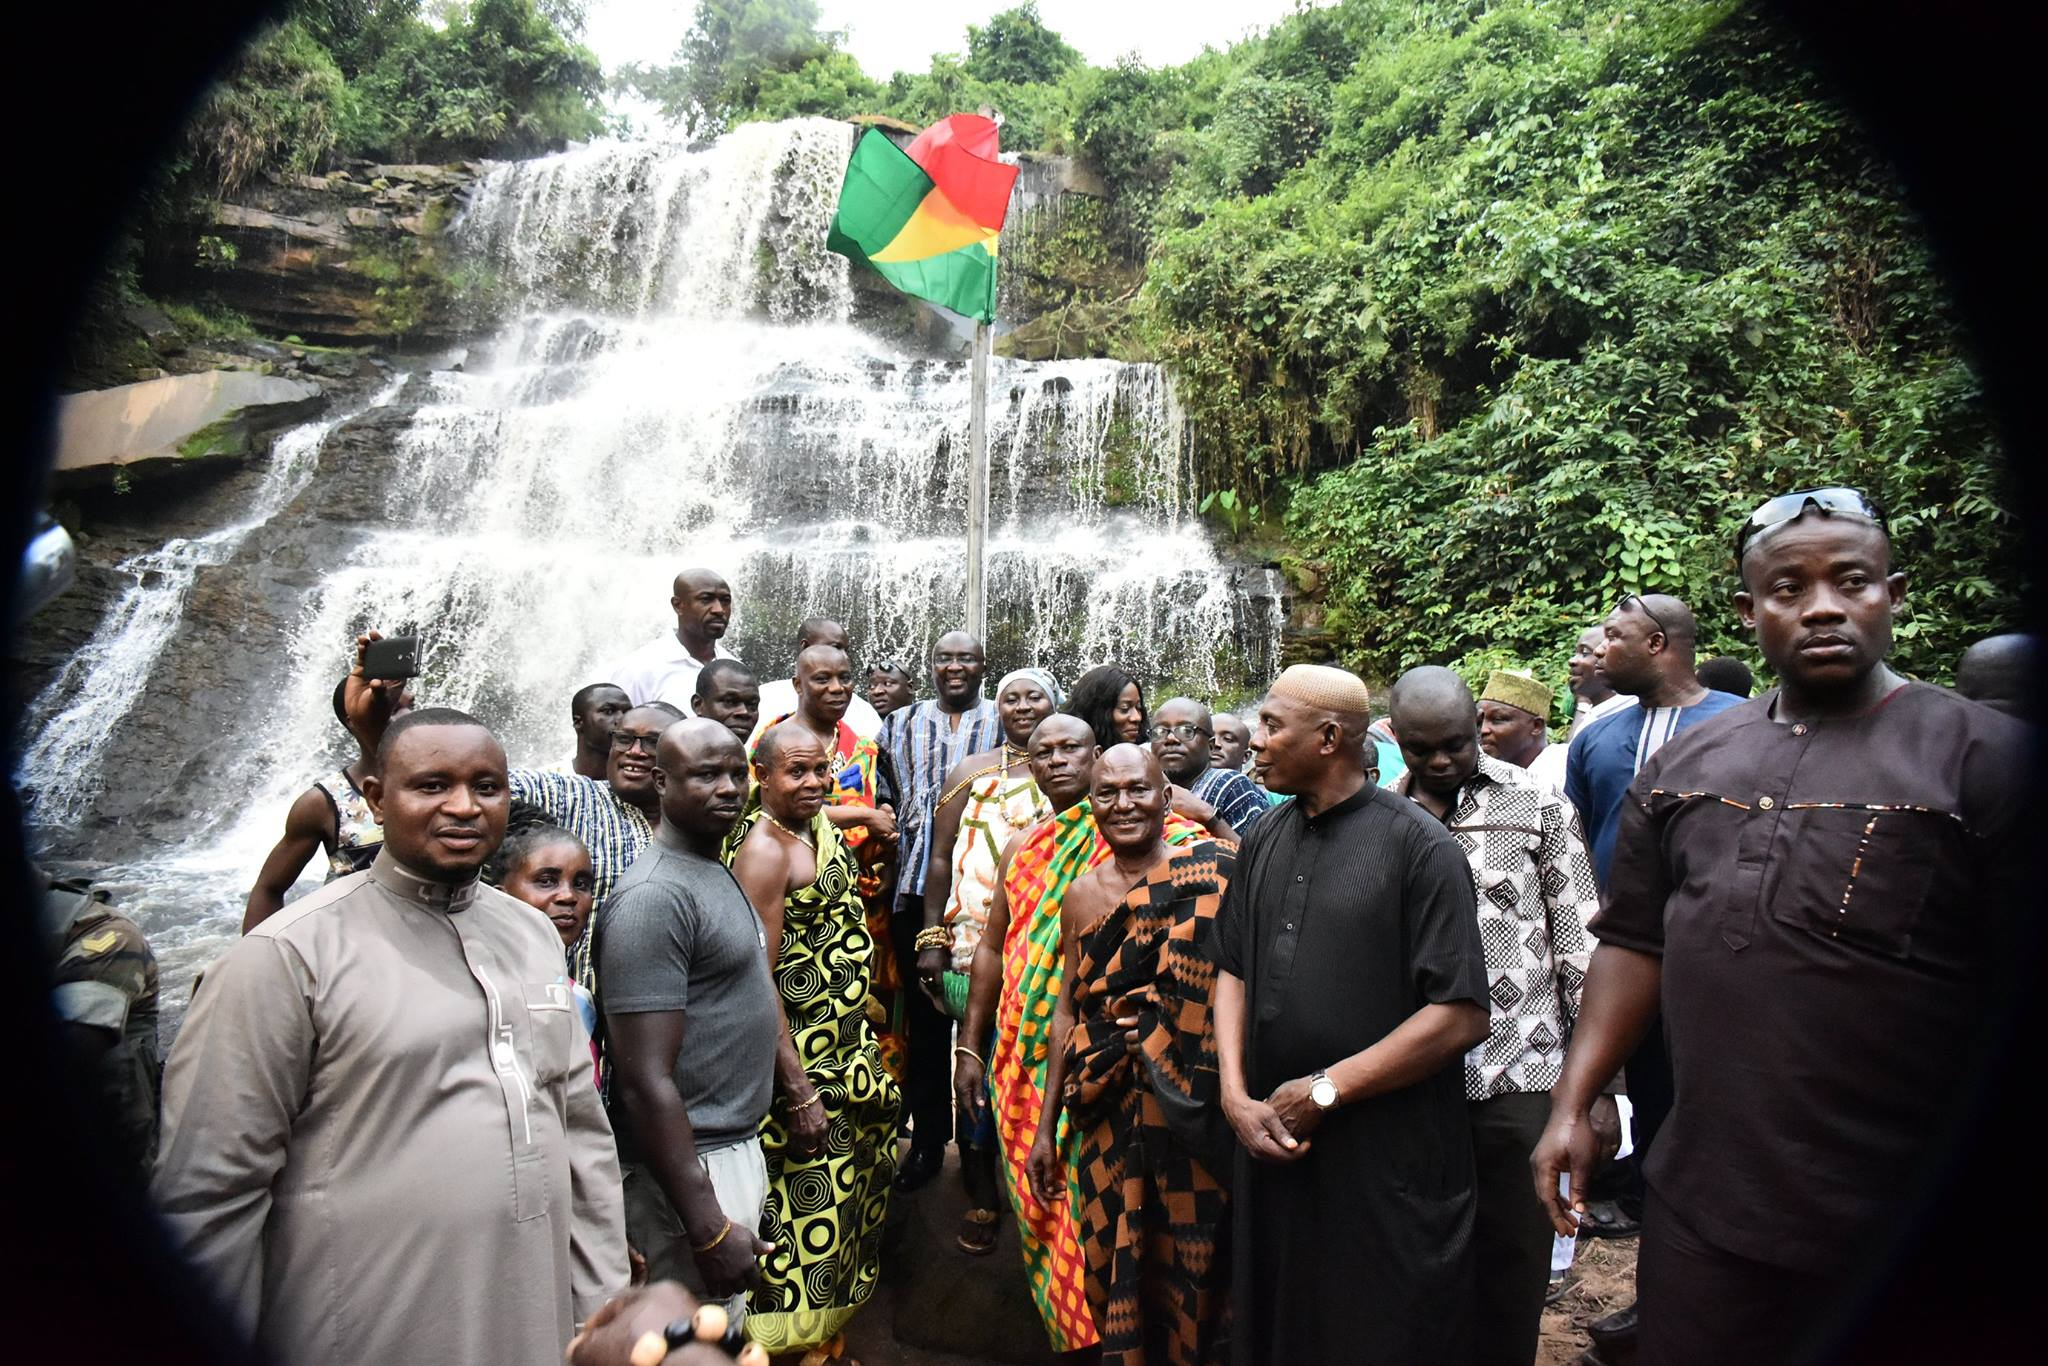 #Ghana: Kintampo Waterfalls Re-opened to Tourists